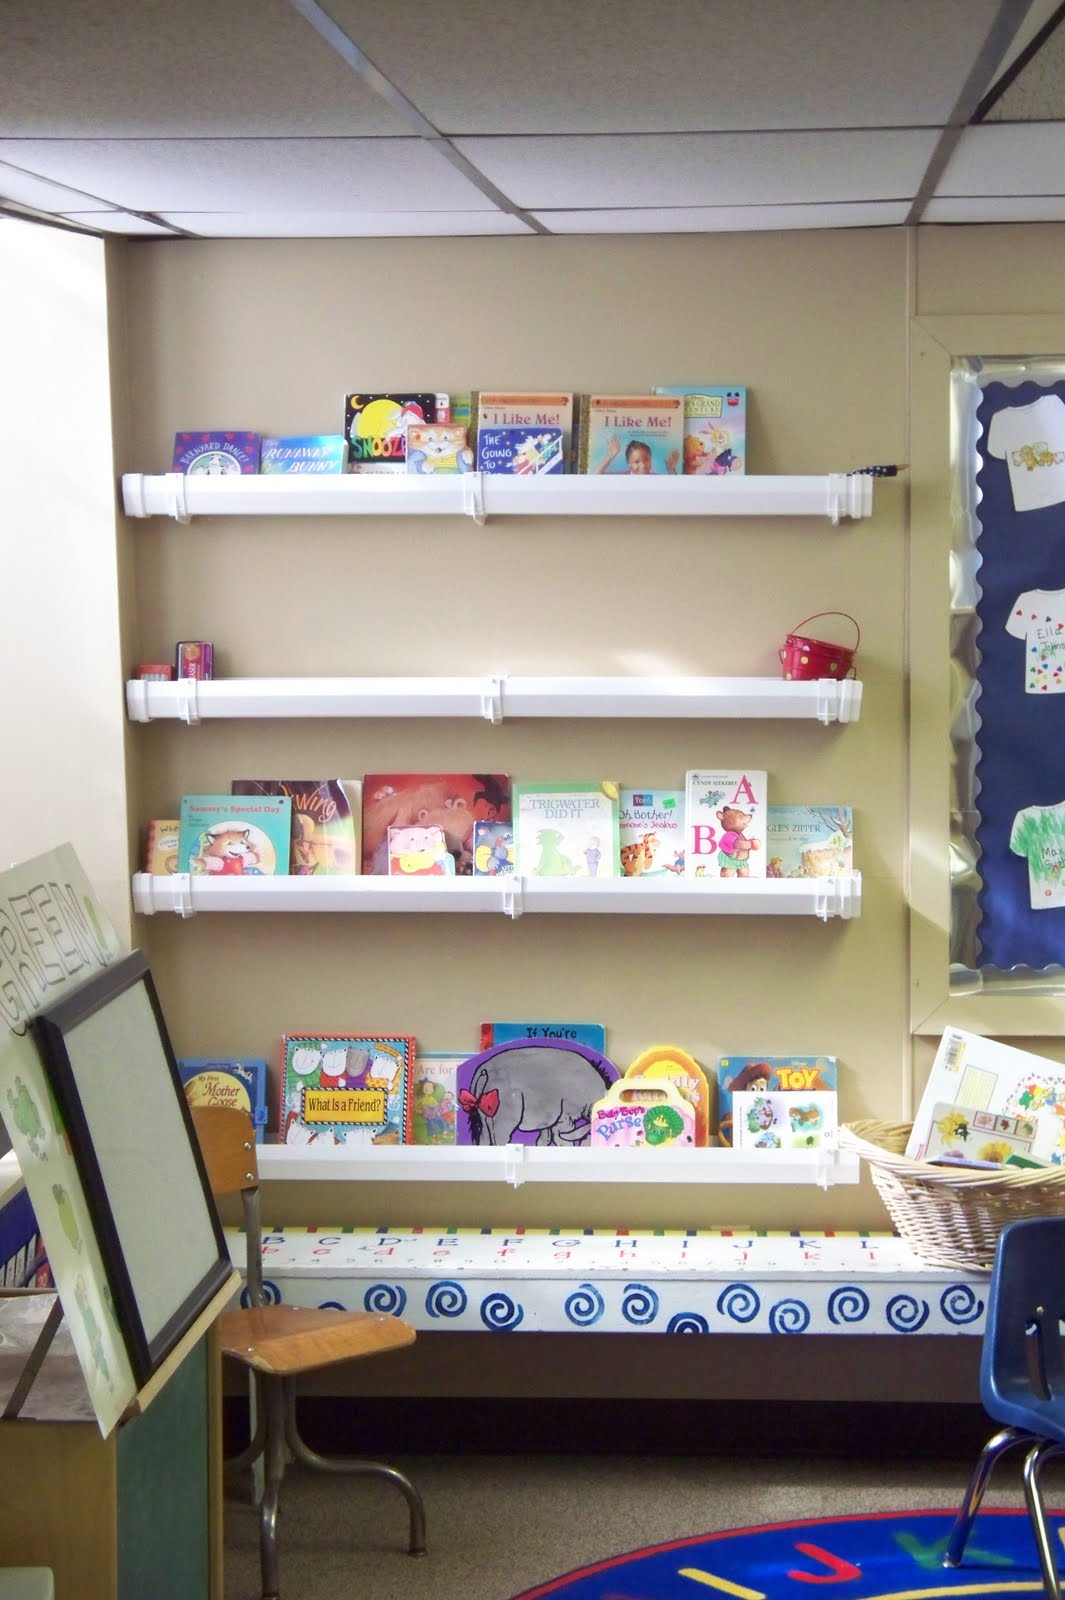 I teach preschool rain gutter bookshelves for Plastic rain gutter bookshelf